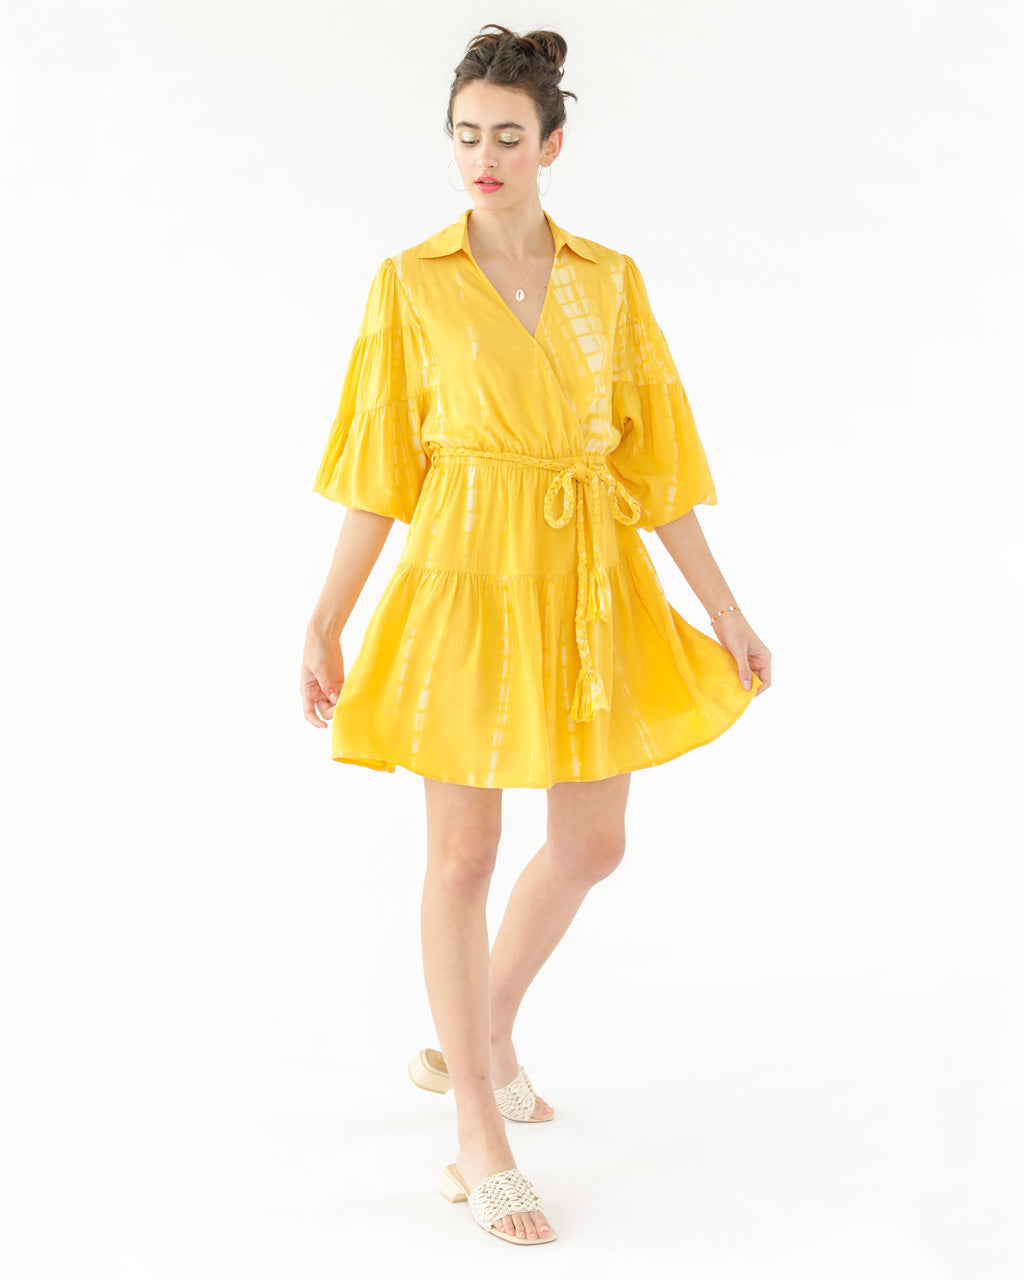 model wearing a yellow tie dye dress with a rope tie waist